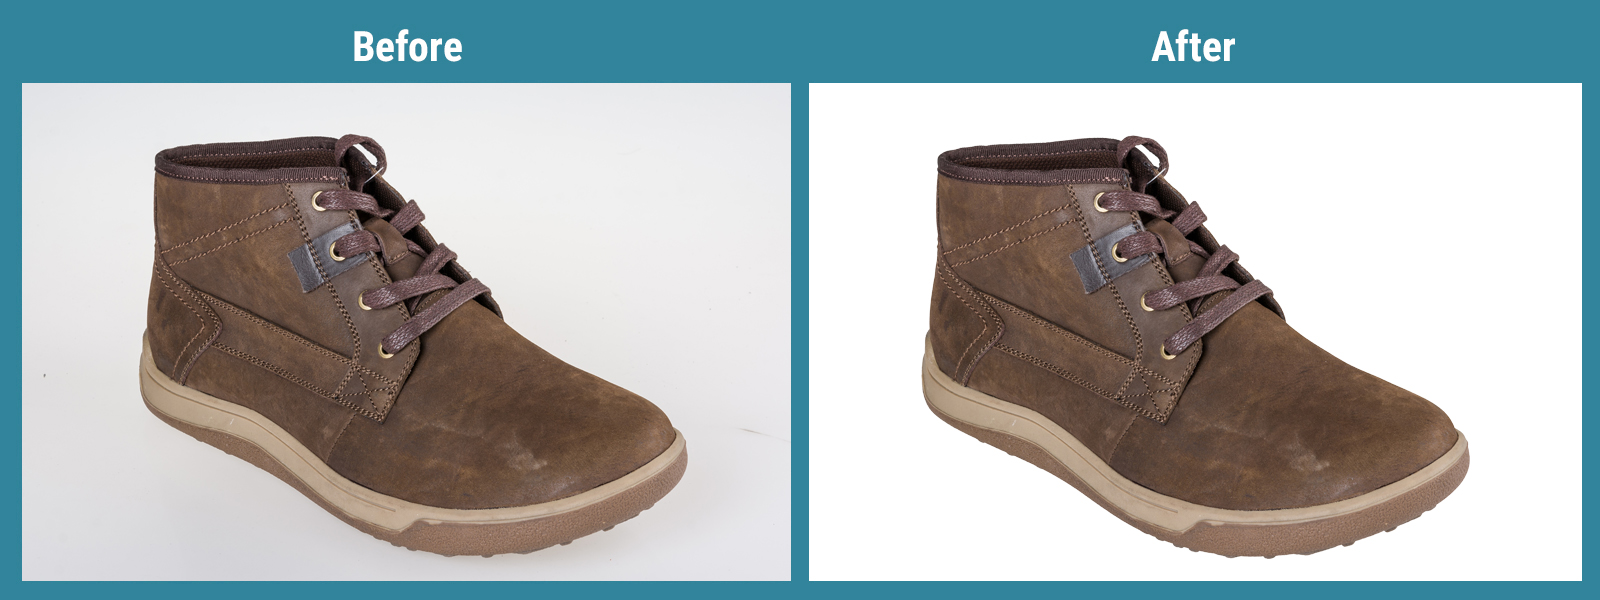 Footwear Image Editing 5